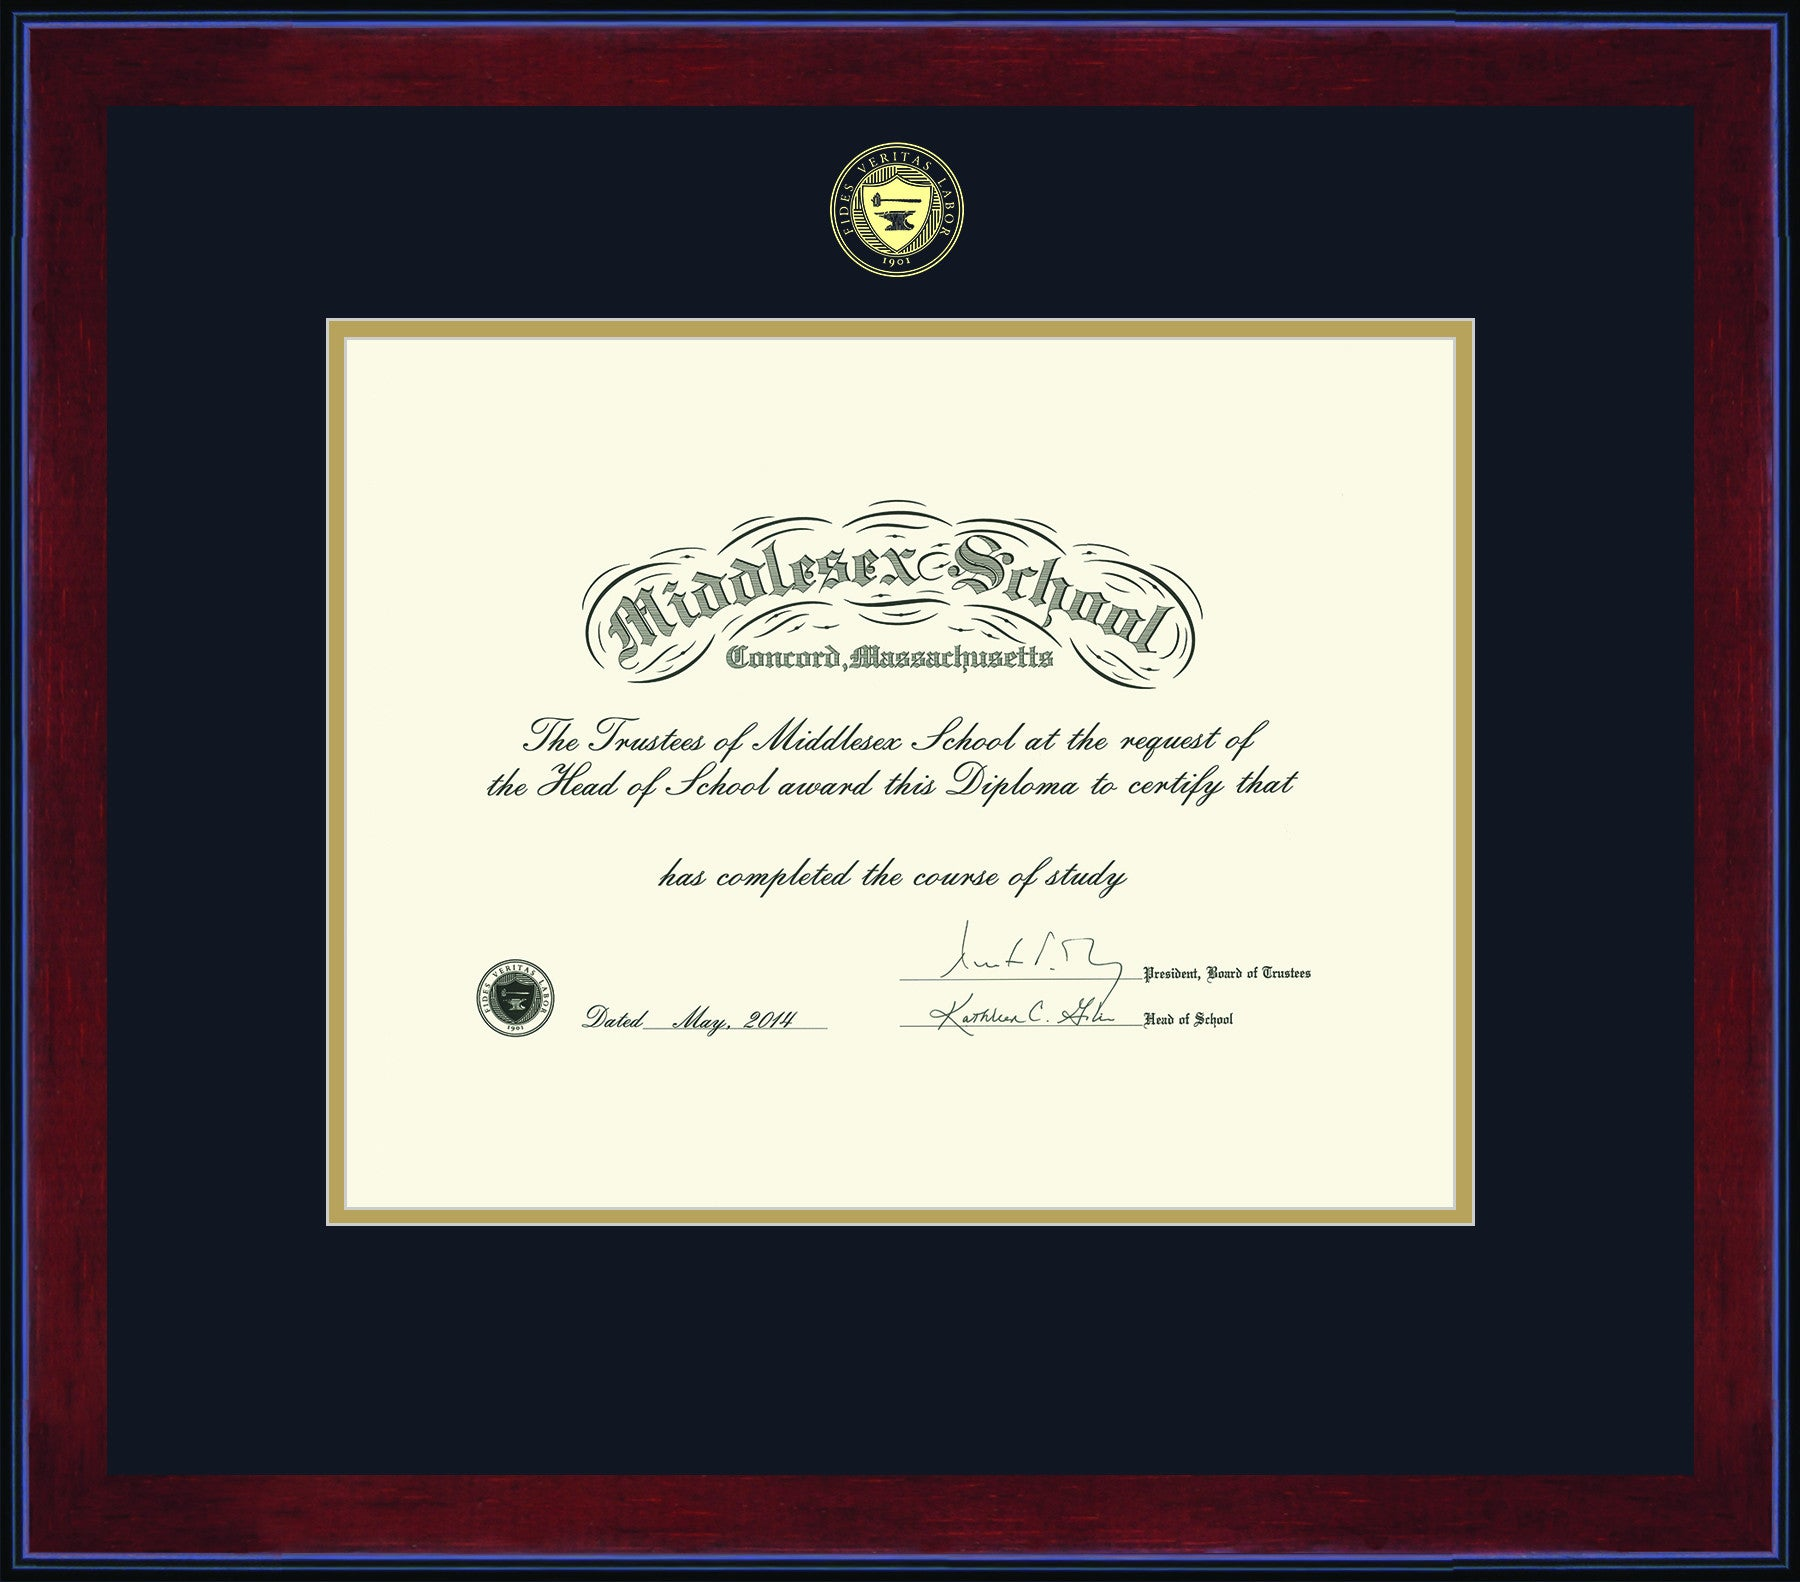 Diploma frames middlesex school store diploma frames diploma frames xflitez Choice Image